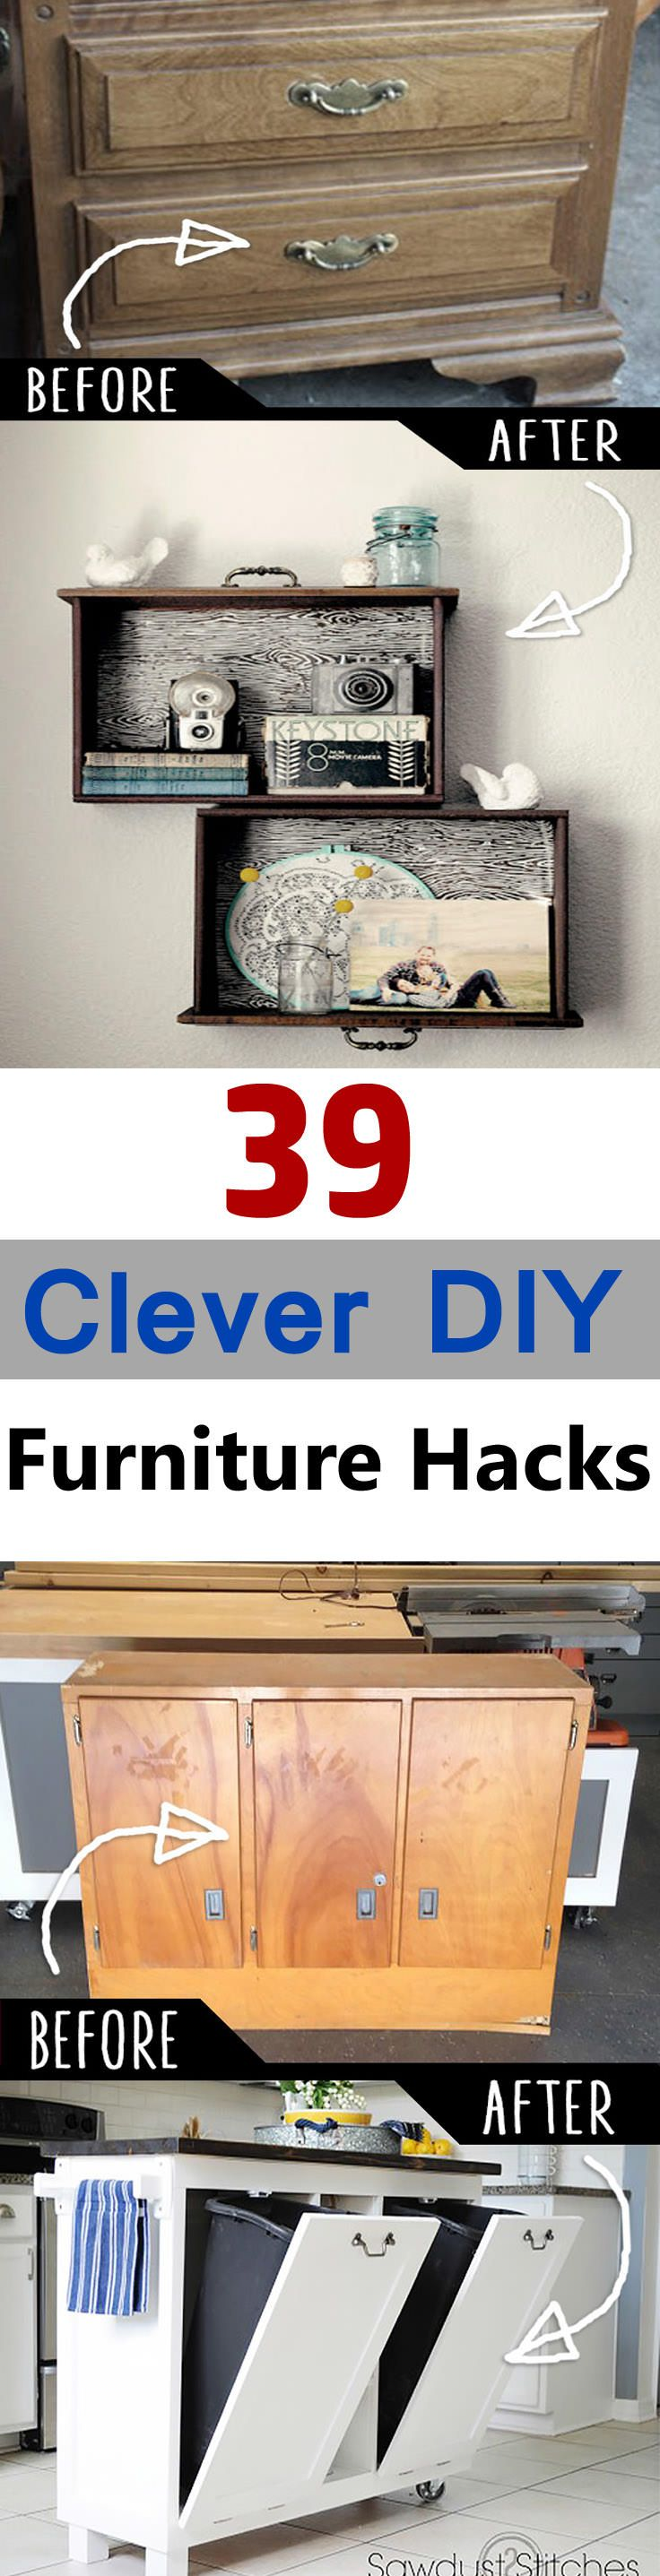 You'll definitely find these 39 clever DIY furniture hacks and ideas very interesting, once you see them.